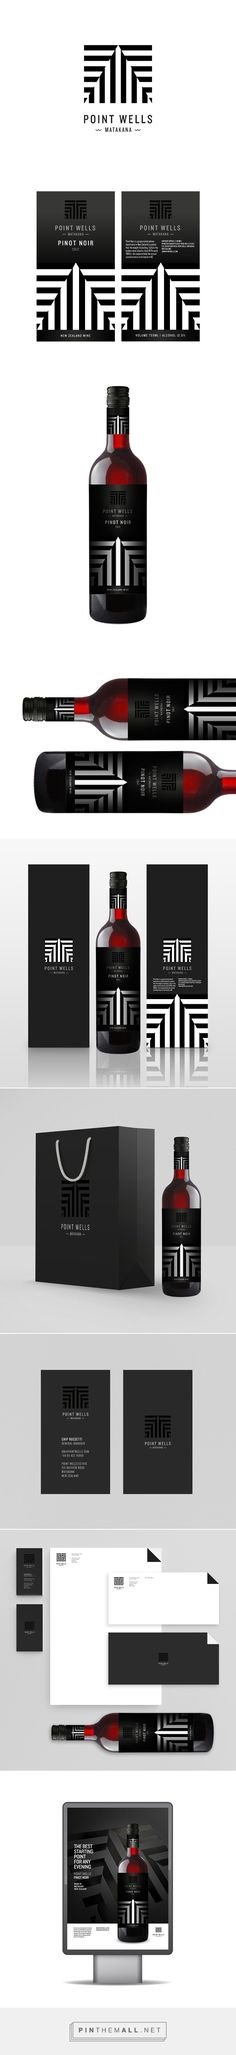 Point Wells Winery Branding and Packaging by Alex Townsend | Fivestar Branding Agency – Design and Branding Agency & Curated Inspiration Gallery